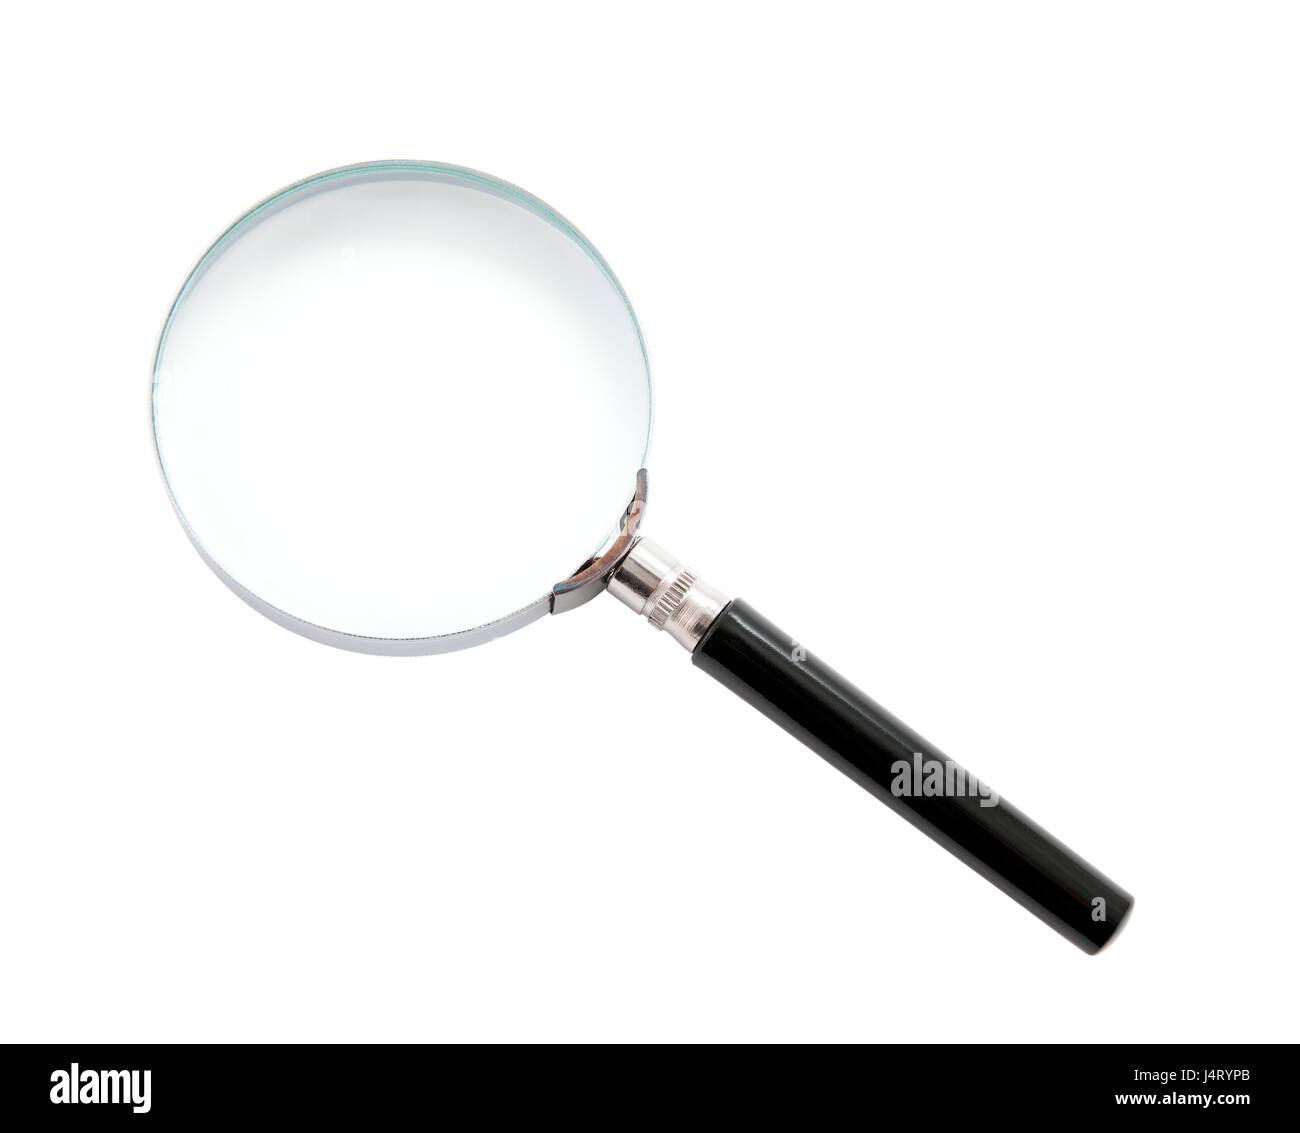 Magnifying glass isolated on white - Stock Image